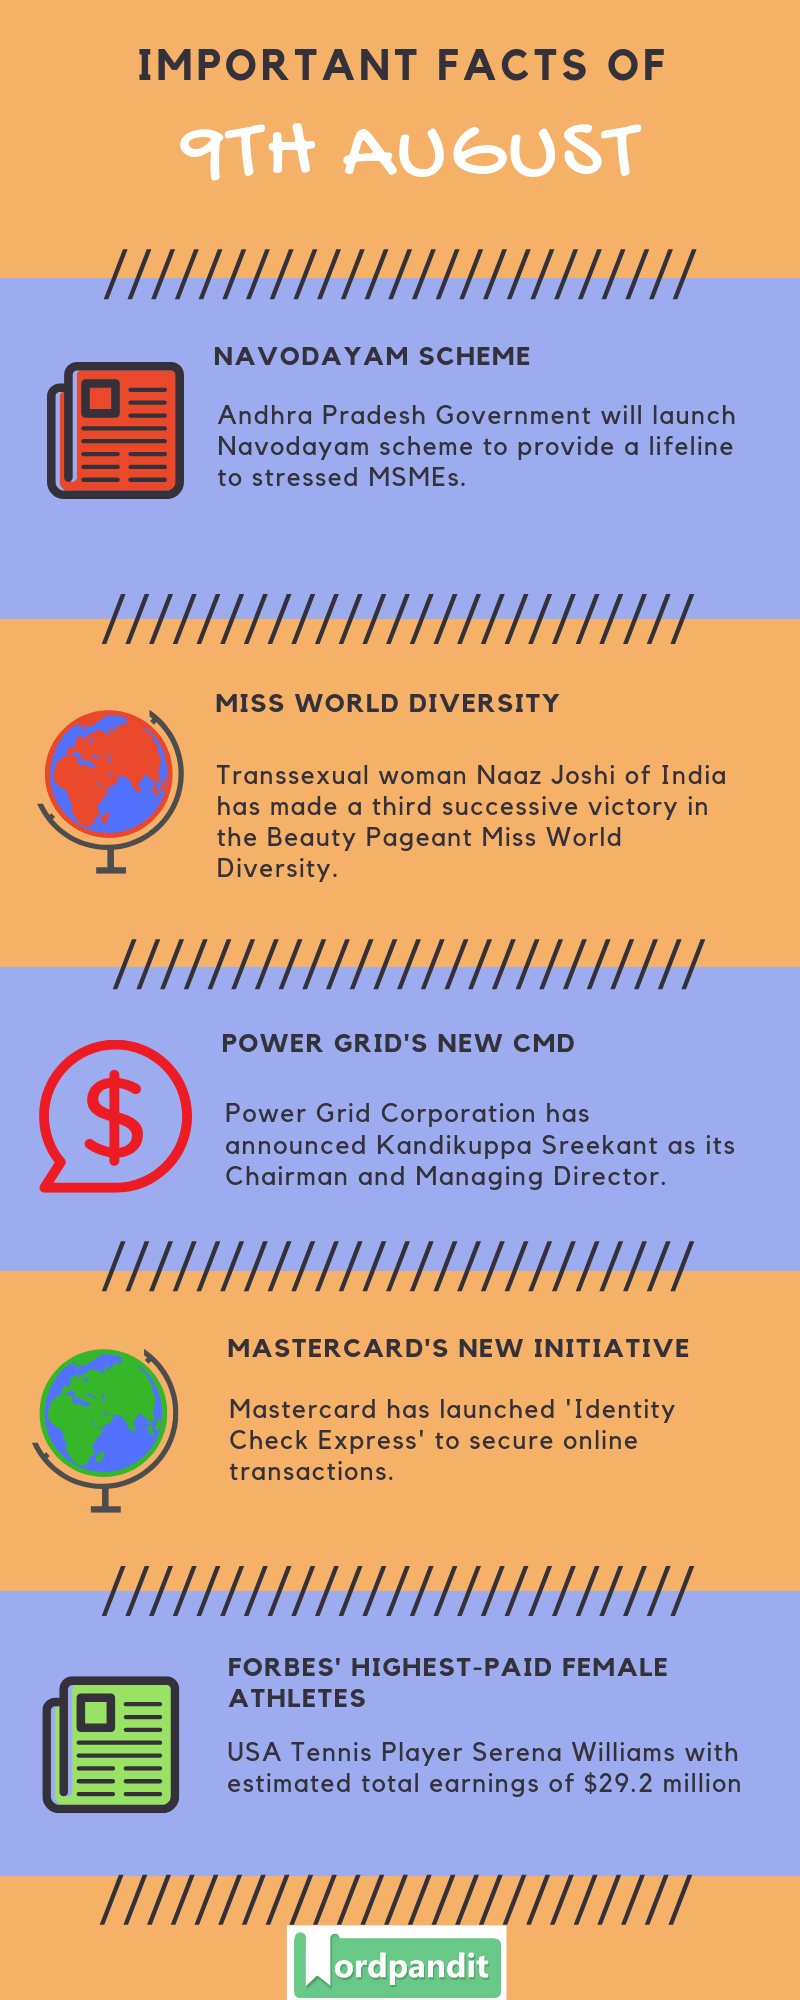 Daily Current Affairs 9 August 2019 Current Affairs Quiz 9 August 2019 Current Affairs Infographic